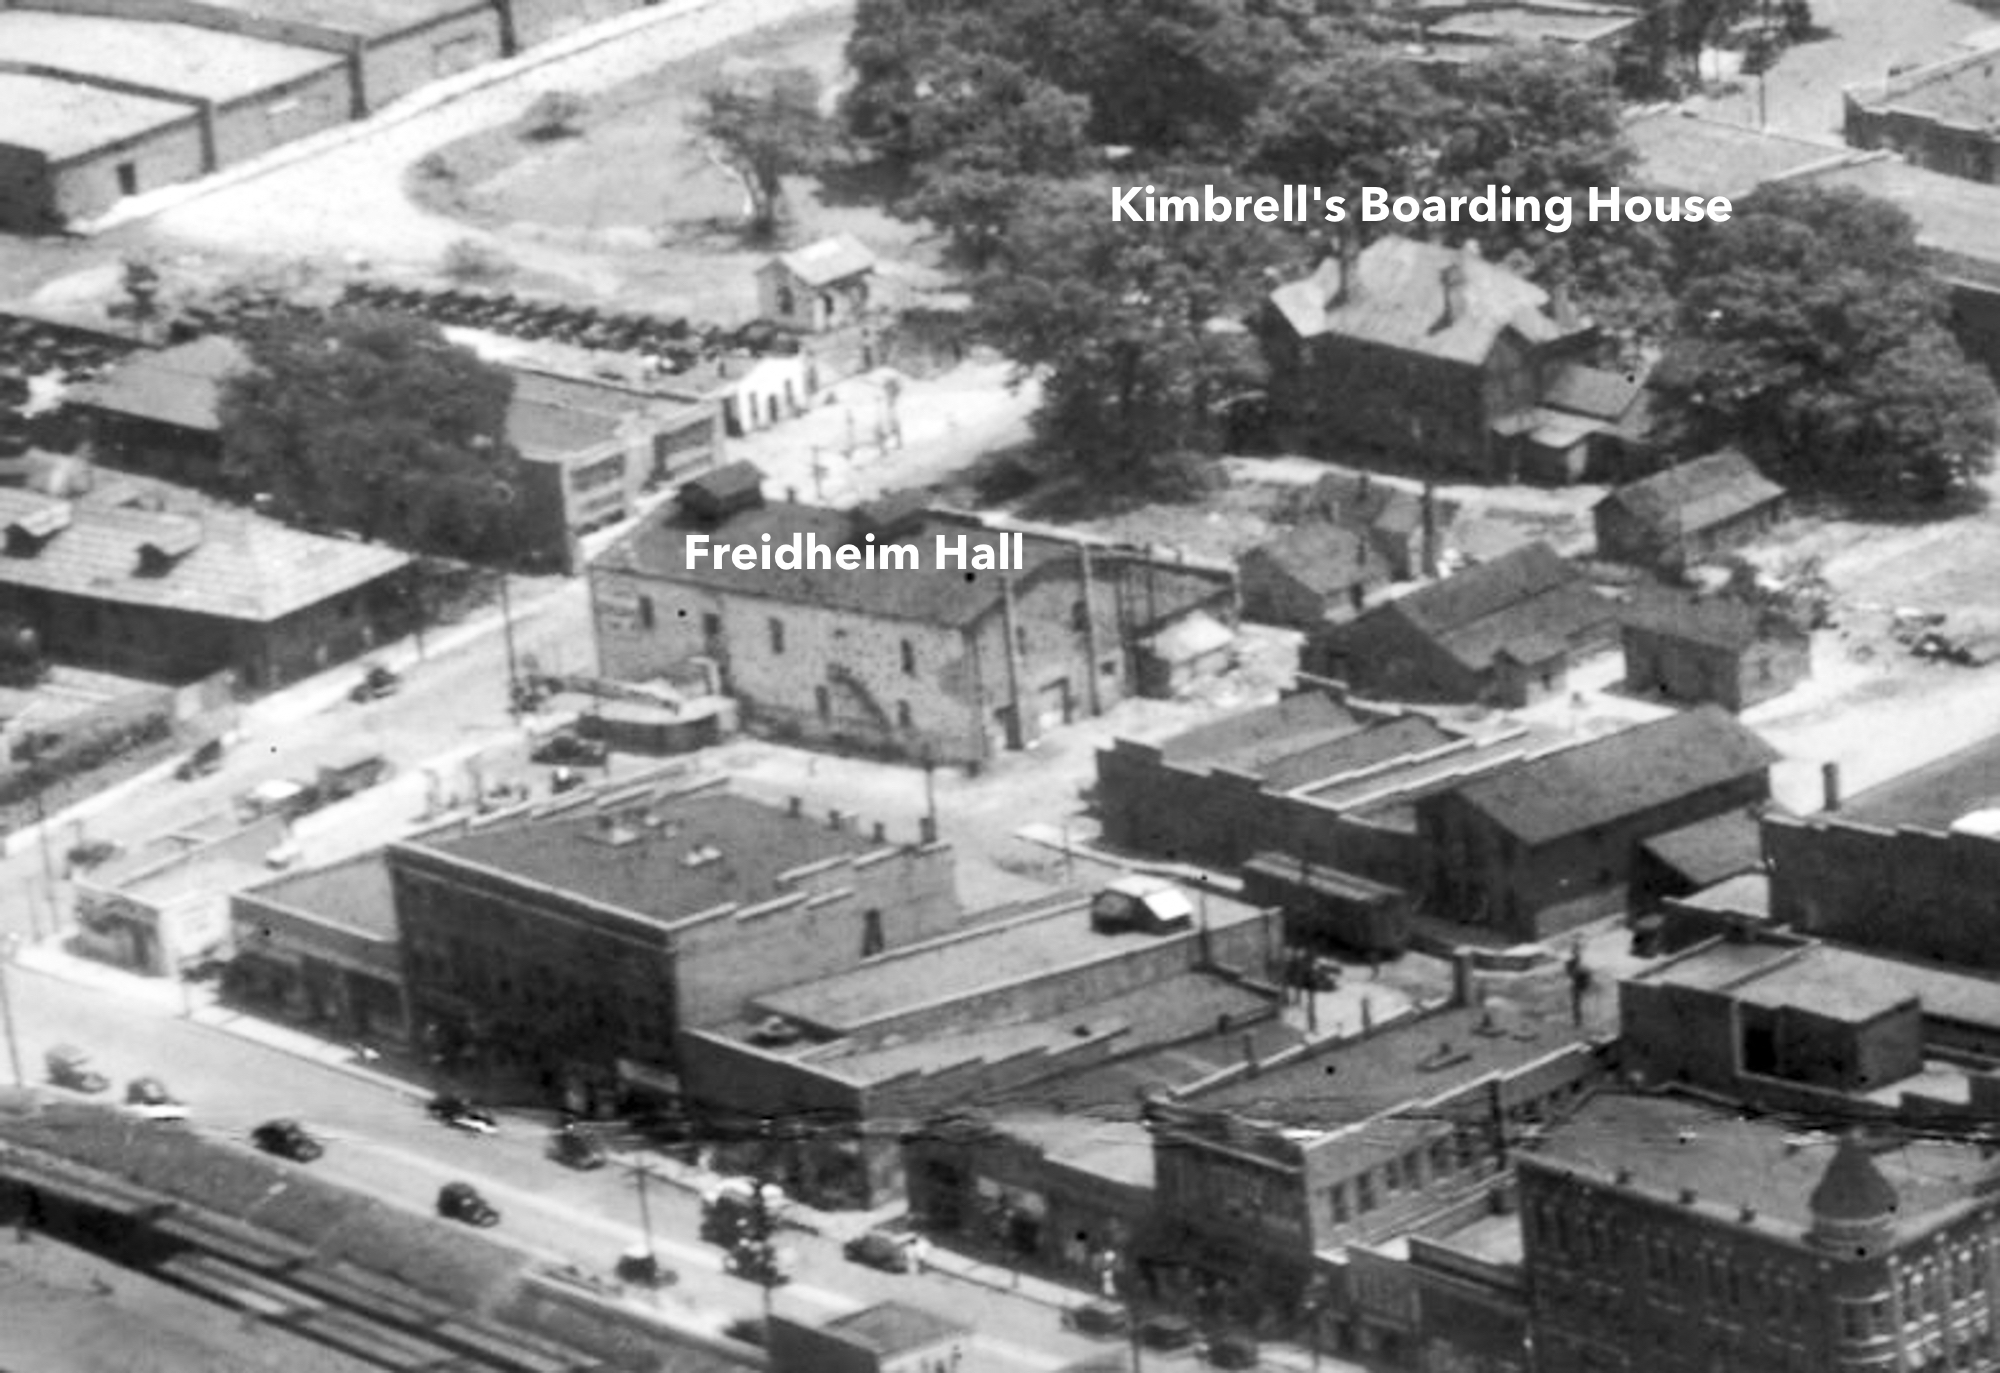 Aerial view showing Kimbrell's Boarding house across the street from Freidheim Hall